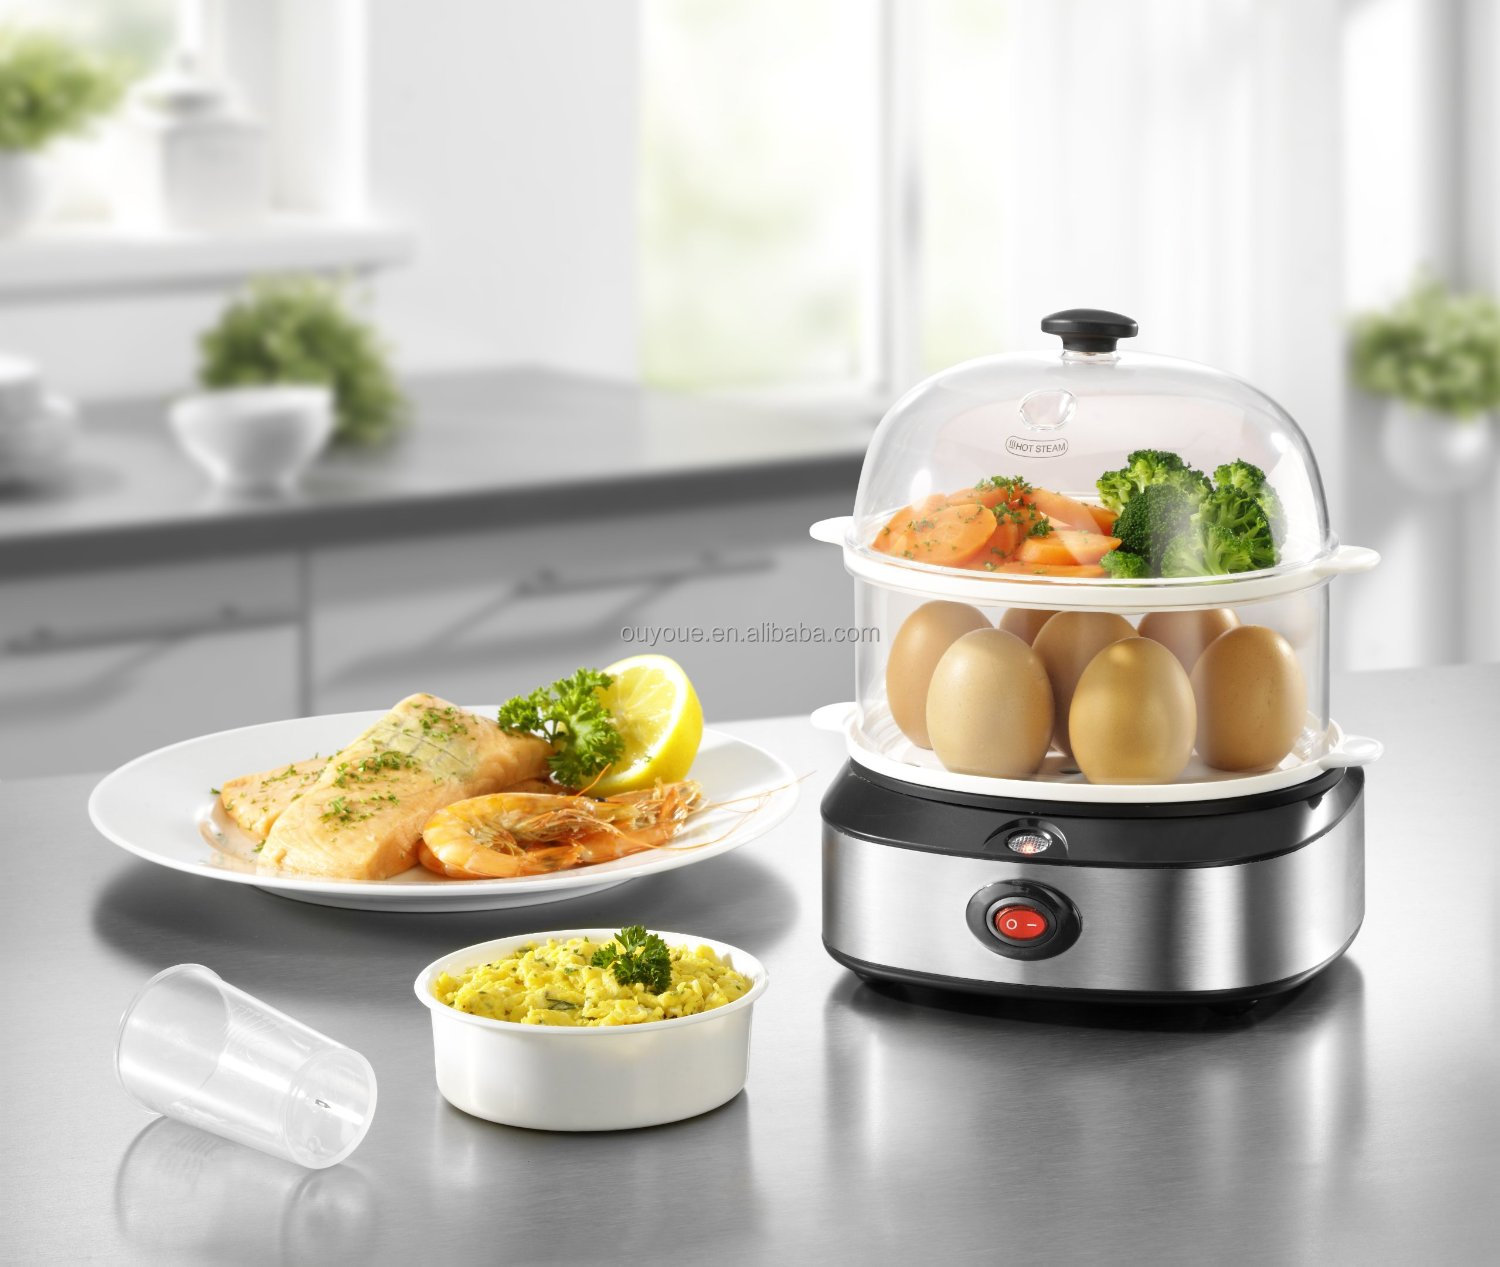 Stainless Steel Electric Vegetable Steamer ~ Stainless steel electric food steamer view